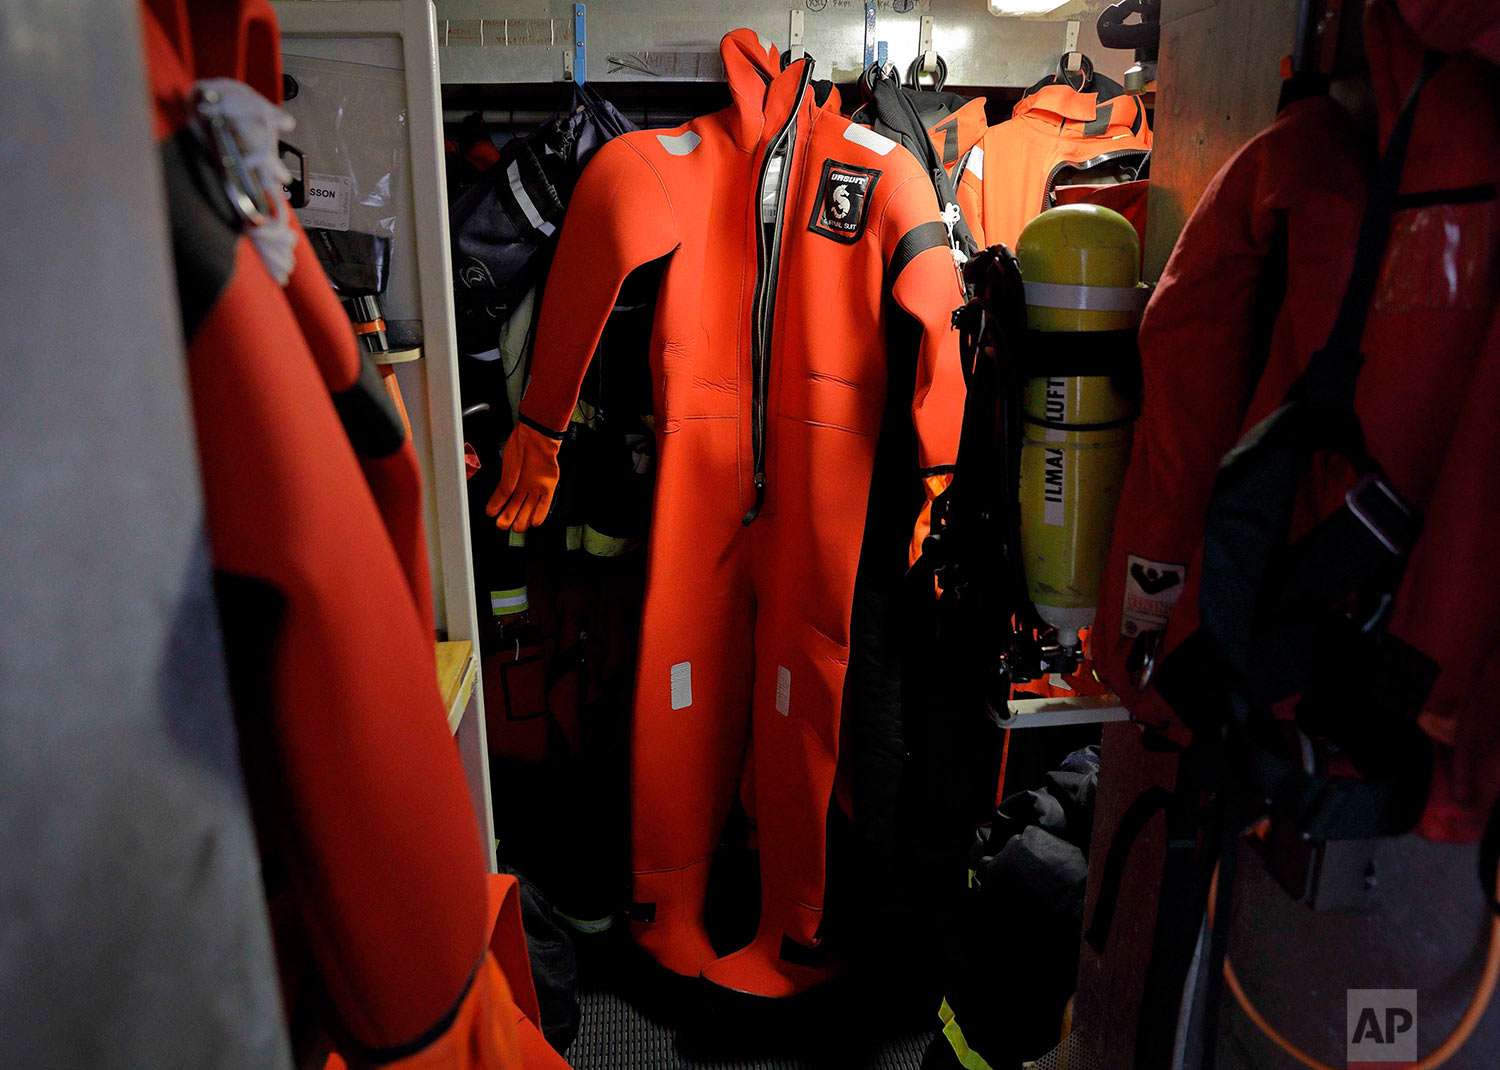 A survival suit is displayed aboard the Finnish icebreaker MSV Nordica as it sails through Lancaster Sound while traversing the Northwest Passage through the Canadian Arctic Archipelago, Monday, July 24, 2017. (AP Photo/David Goldman)